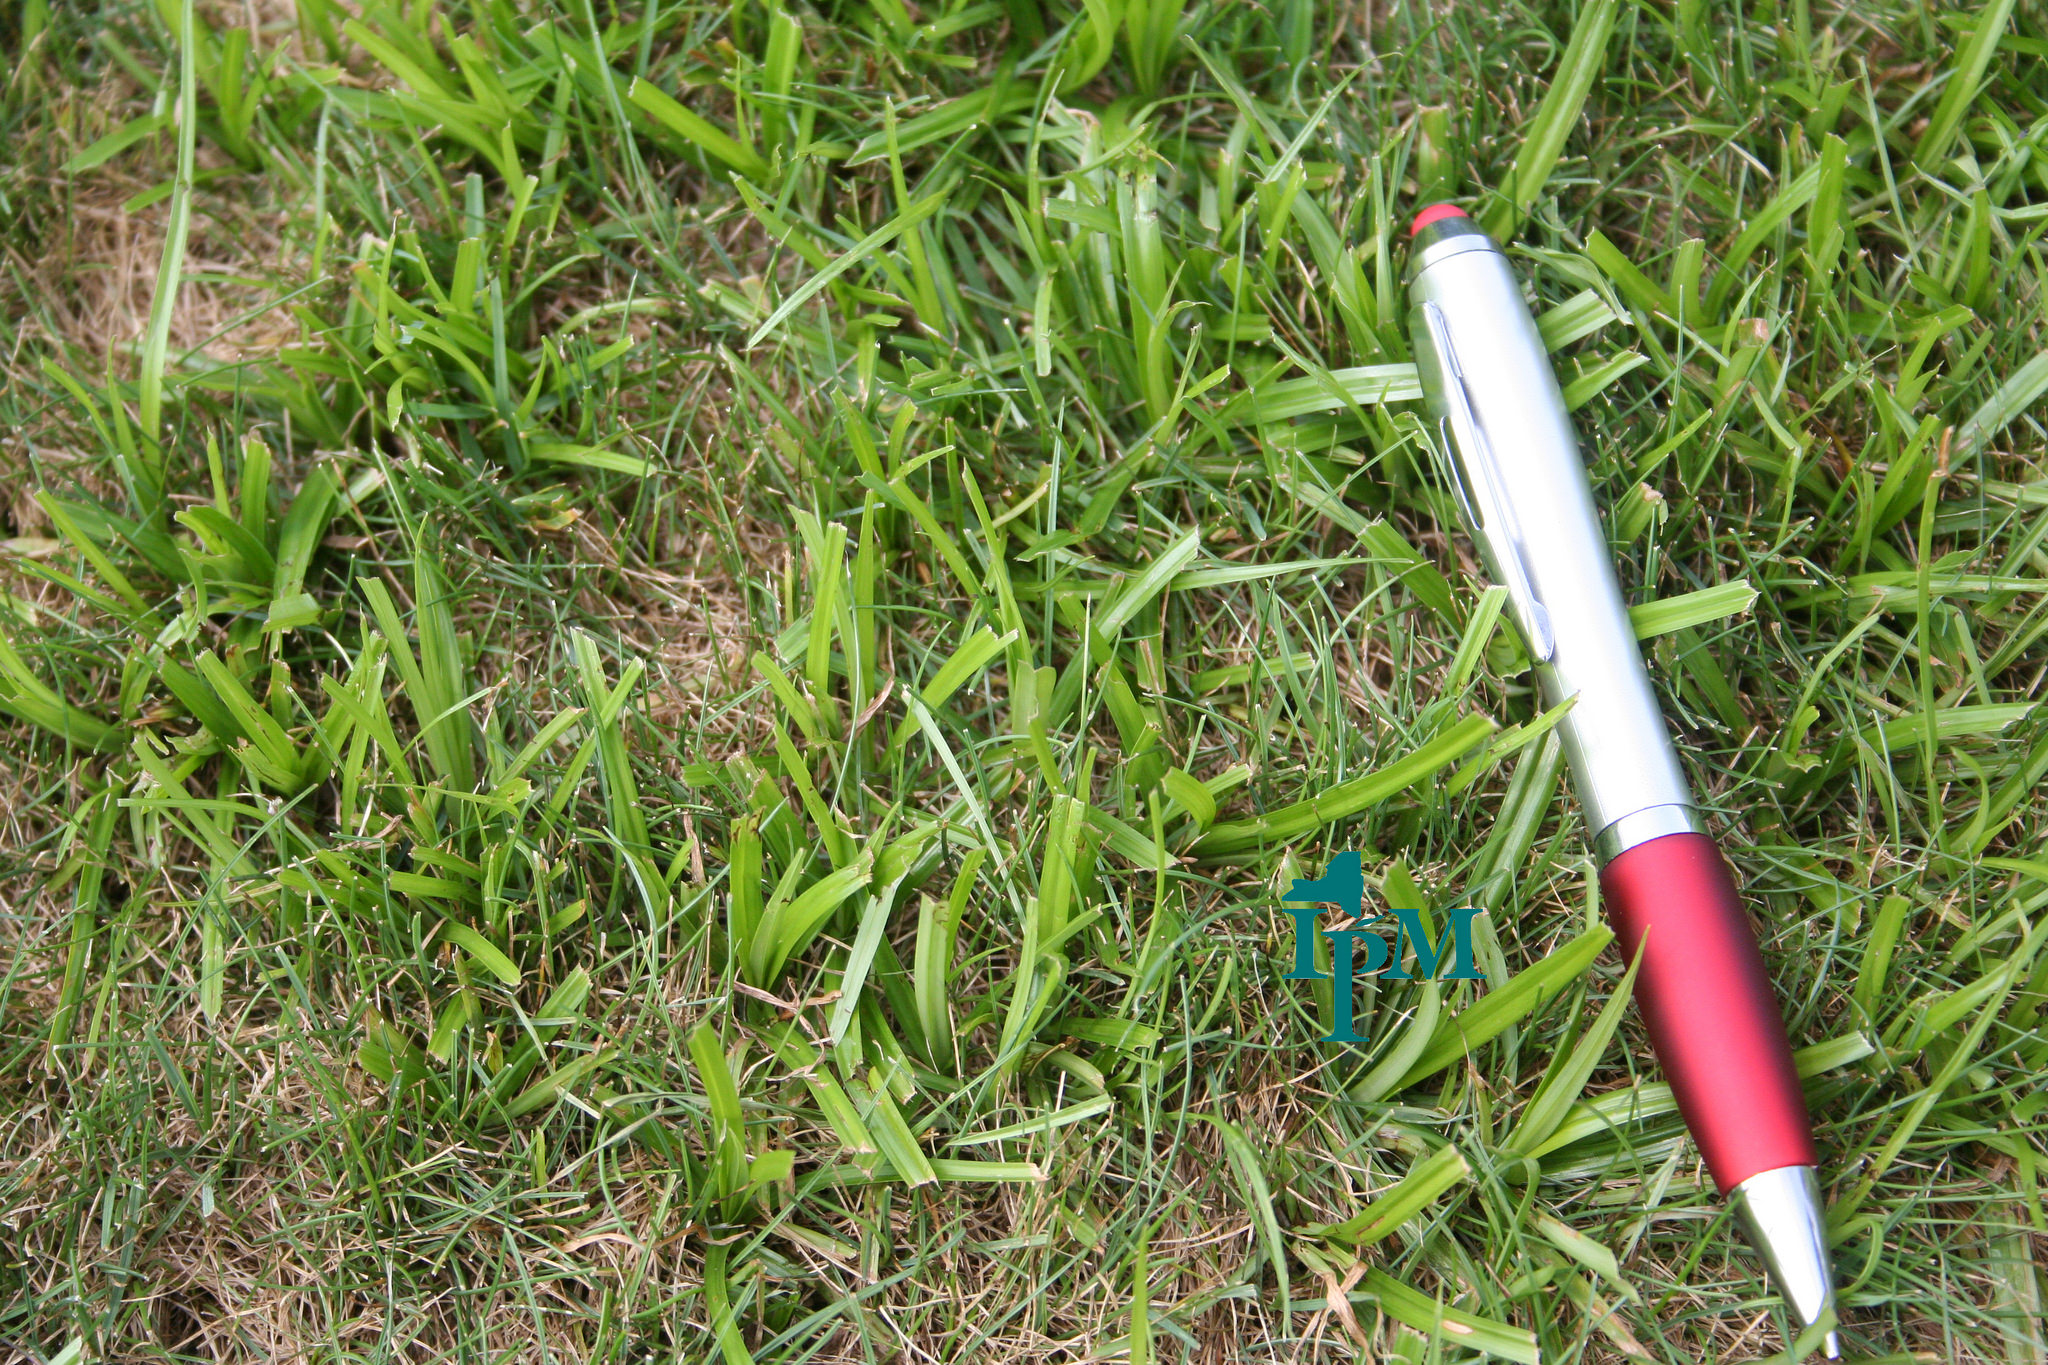 The size of nutsedge weeds compared to a pen.